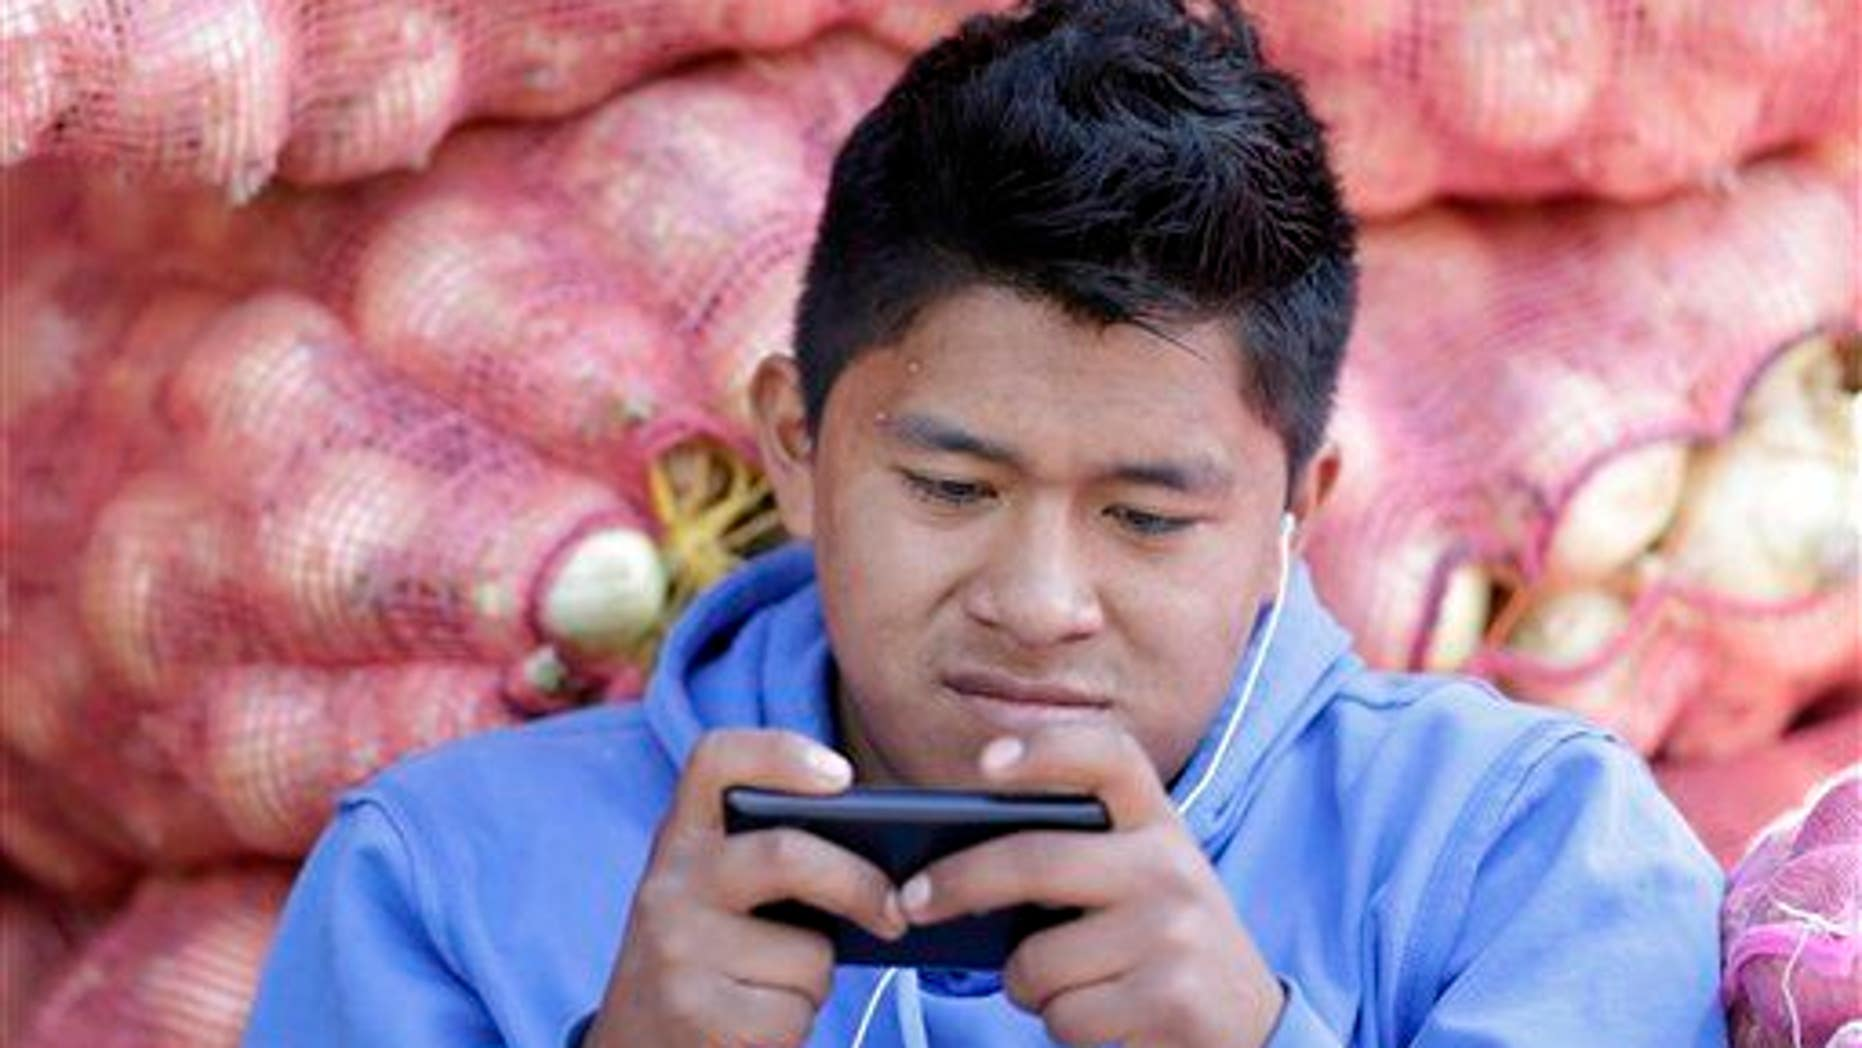 File photo of a man texting.